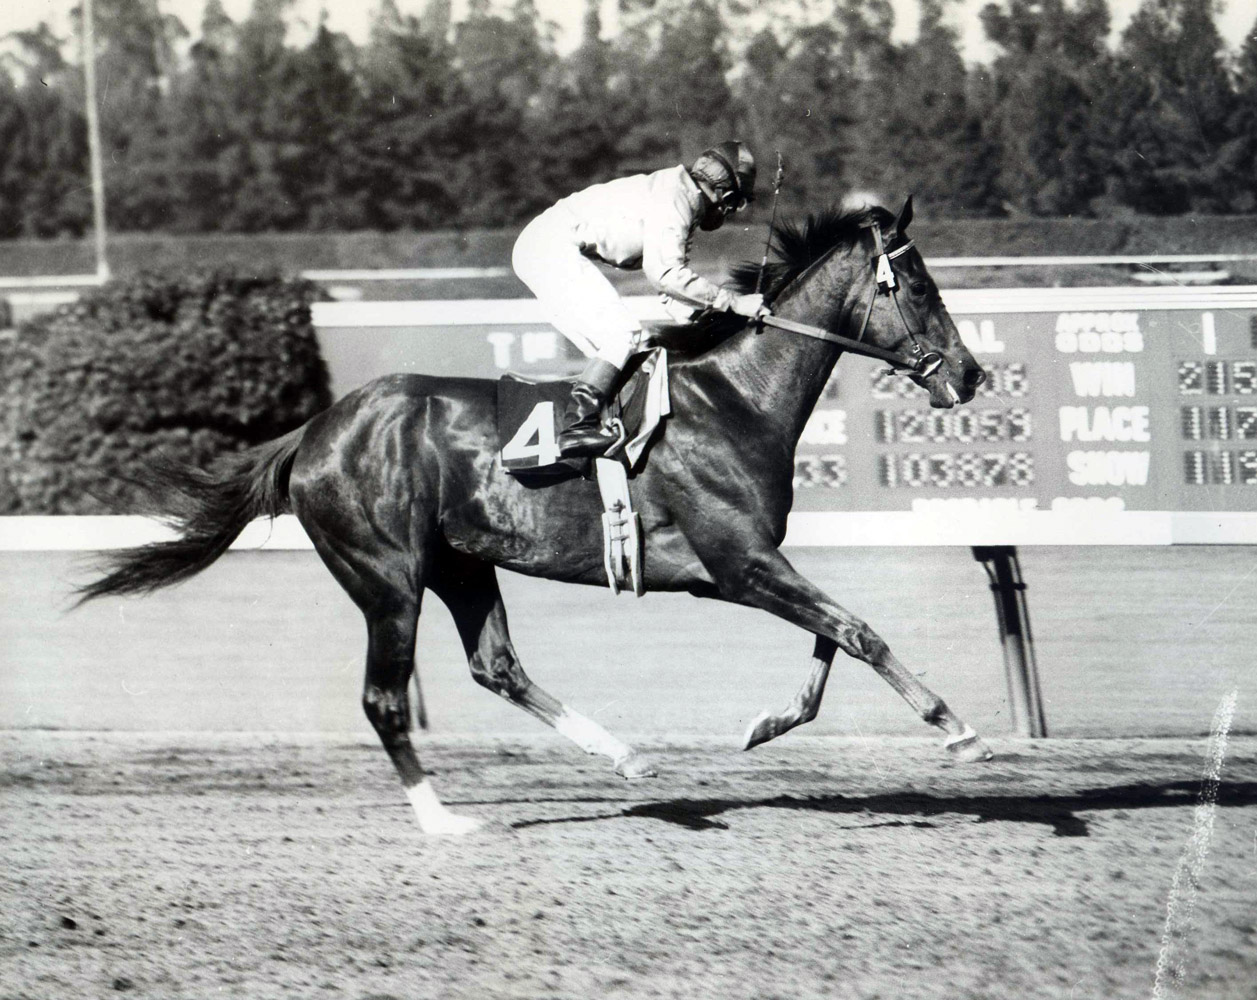 Silver Spoon (Bill Boland up) winning the 1959 Cinema Handicap at Hollywood Park (Museum Collection)